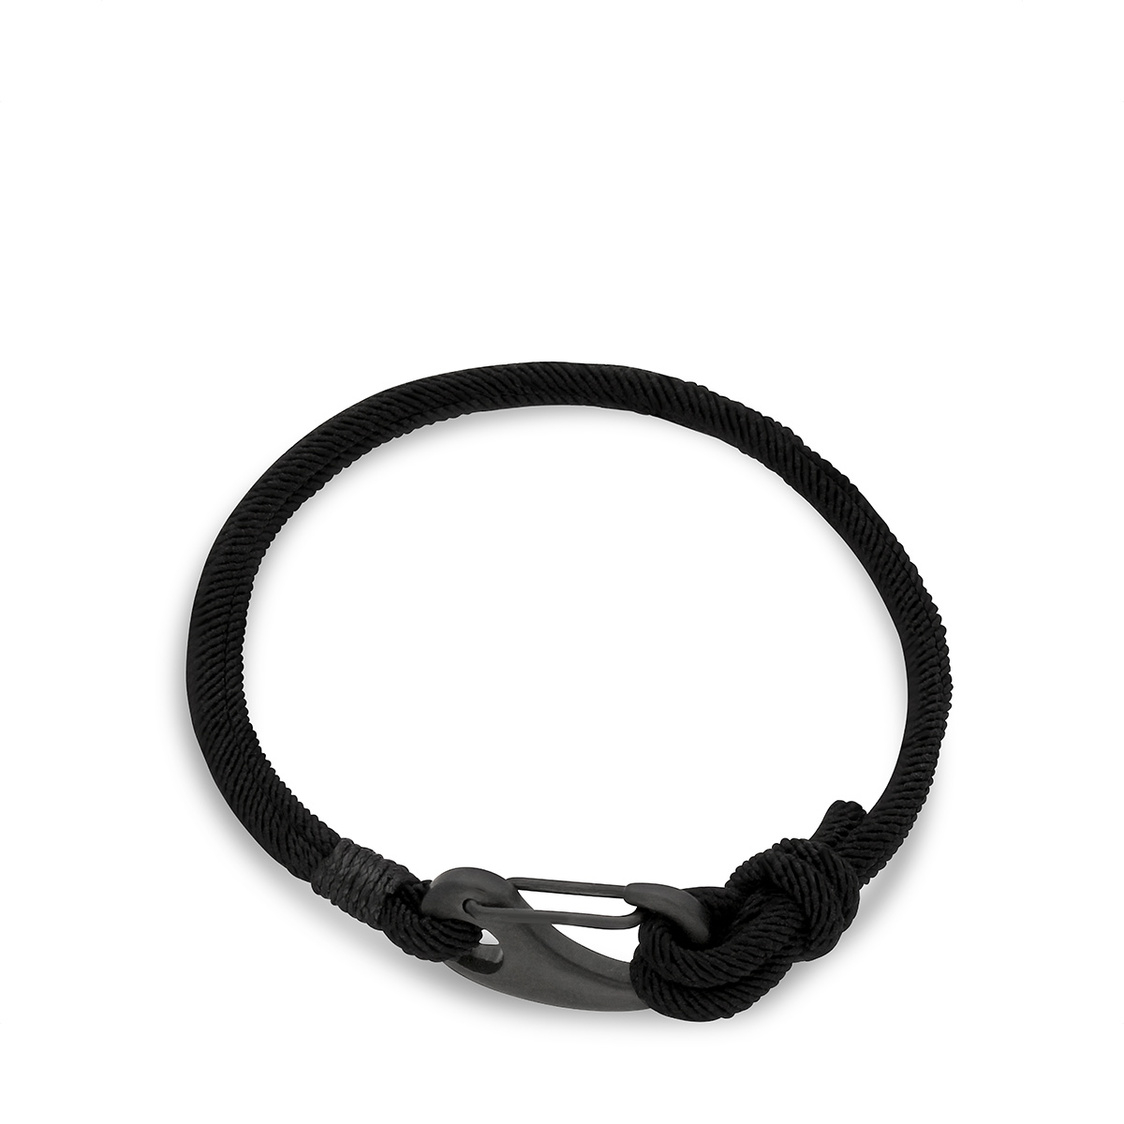 Ron Bracelet - Black Rope